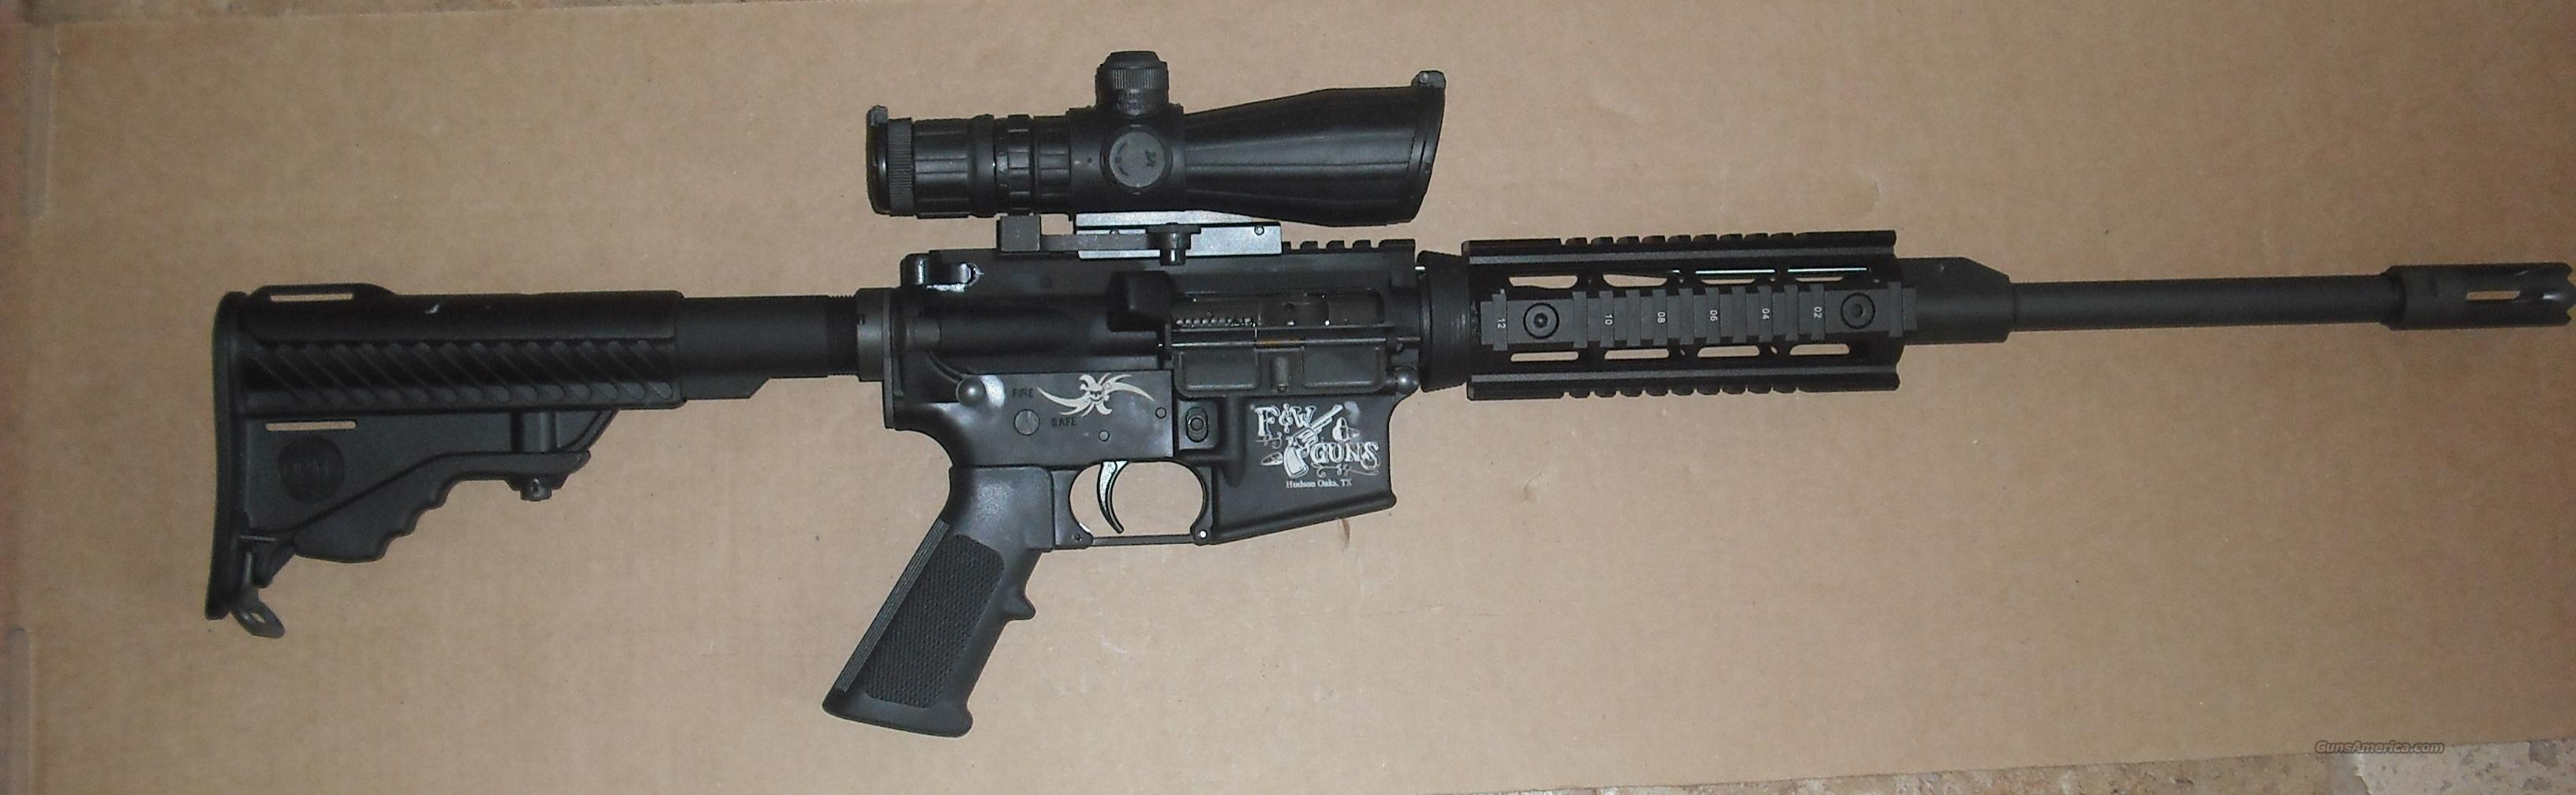 AR-15 in 300 Blackout  Guns > Rifles > AR-15 Rifles - Small Manufacturers > Complete Rifle